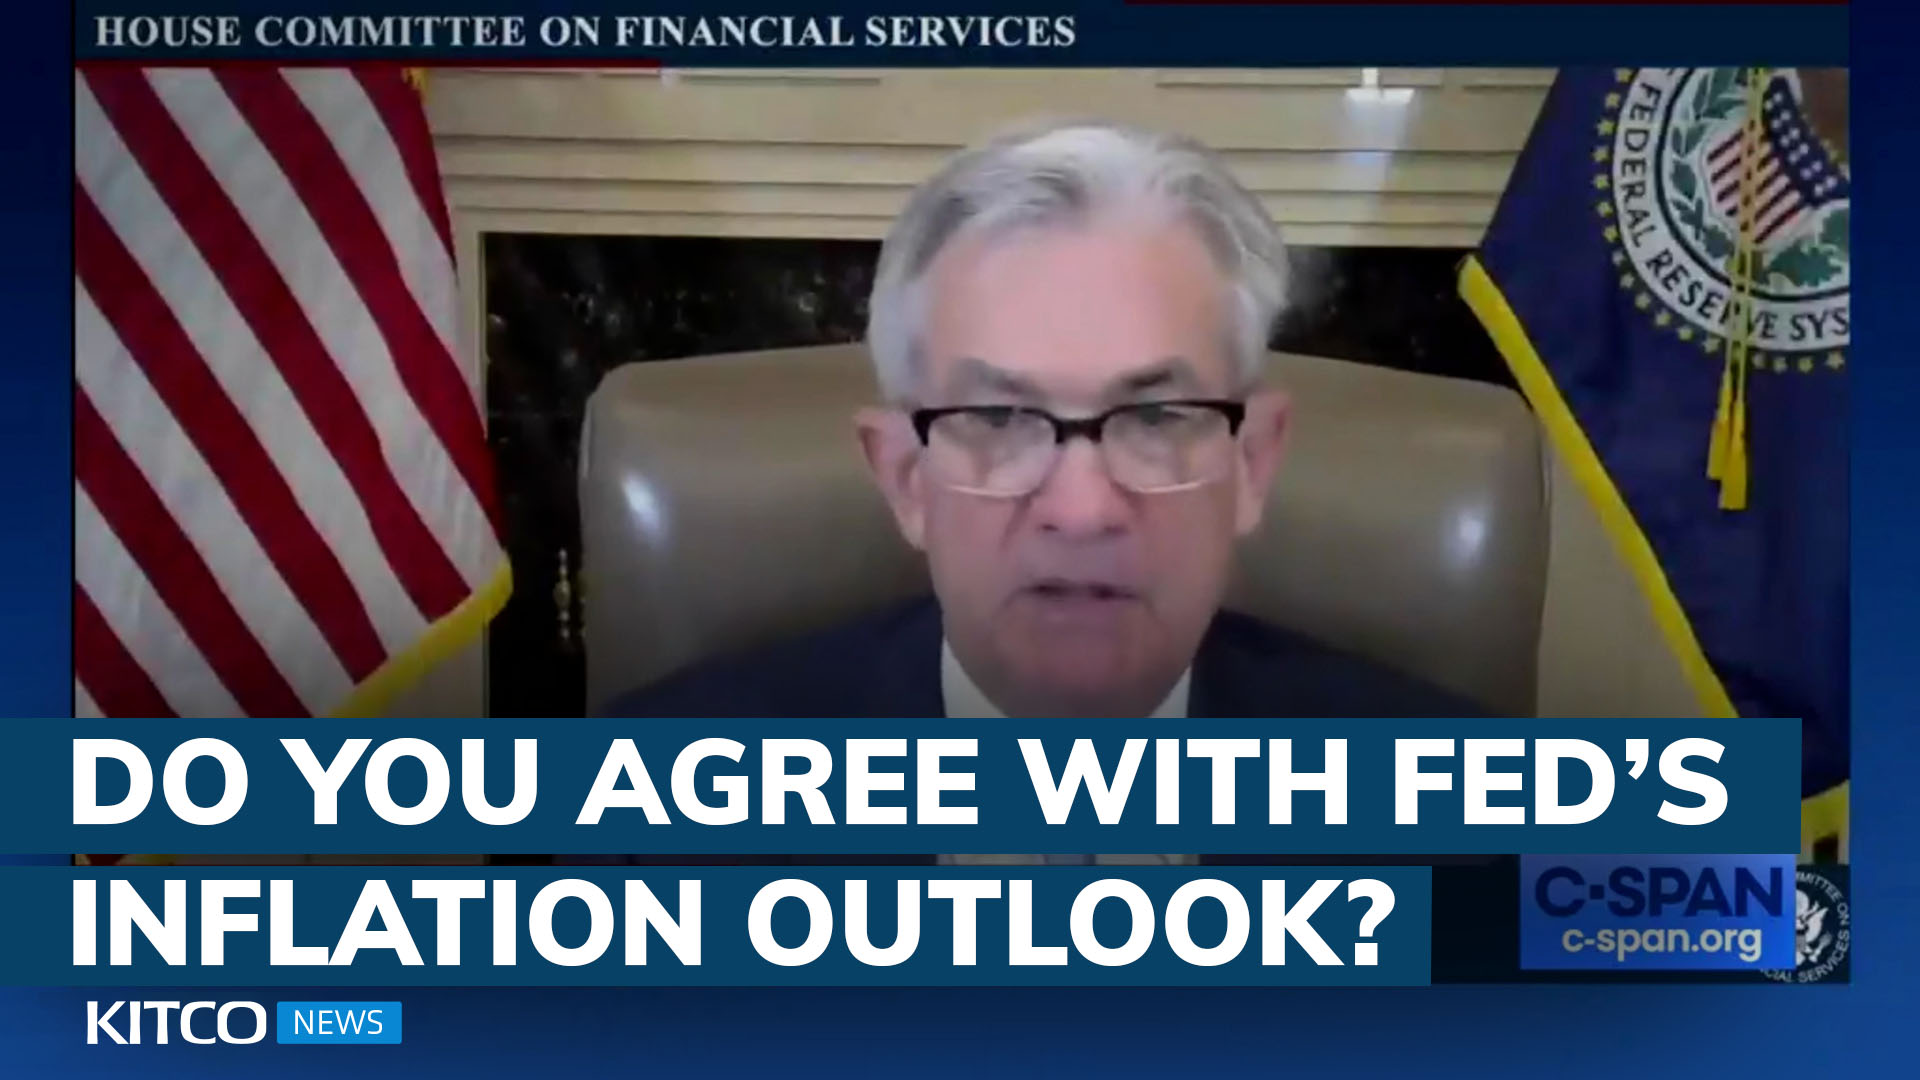 Fed Chair Jerome Powell says money printing doesn't lead to inflation - Kitco NEWS